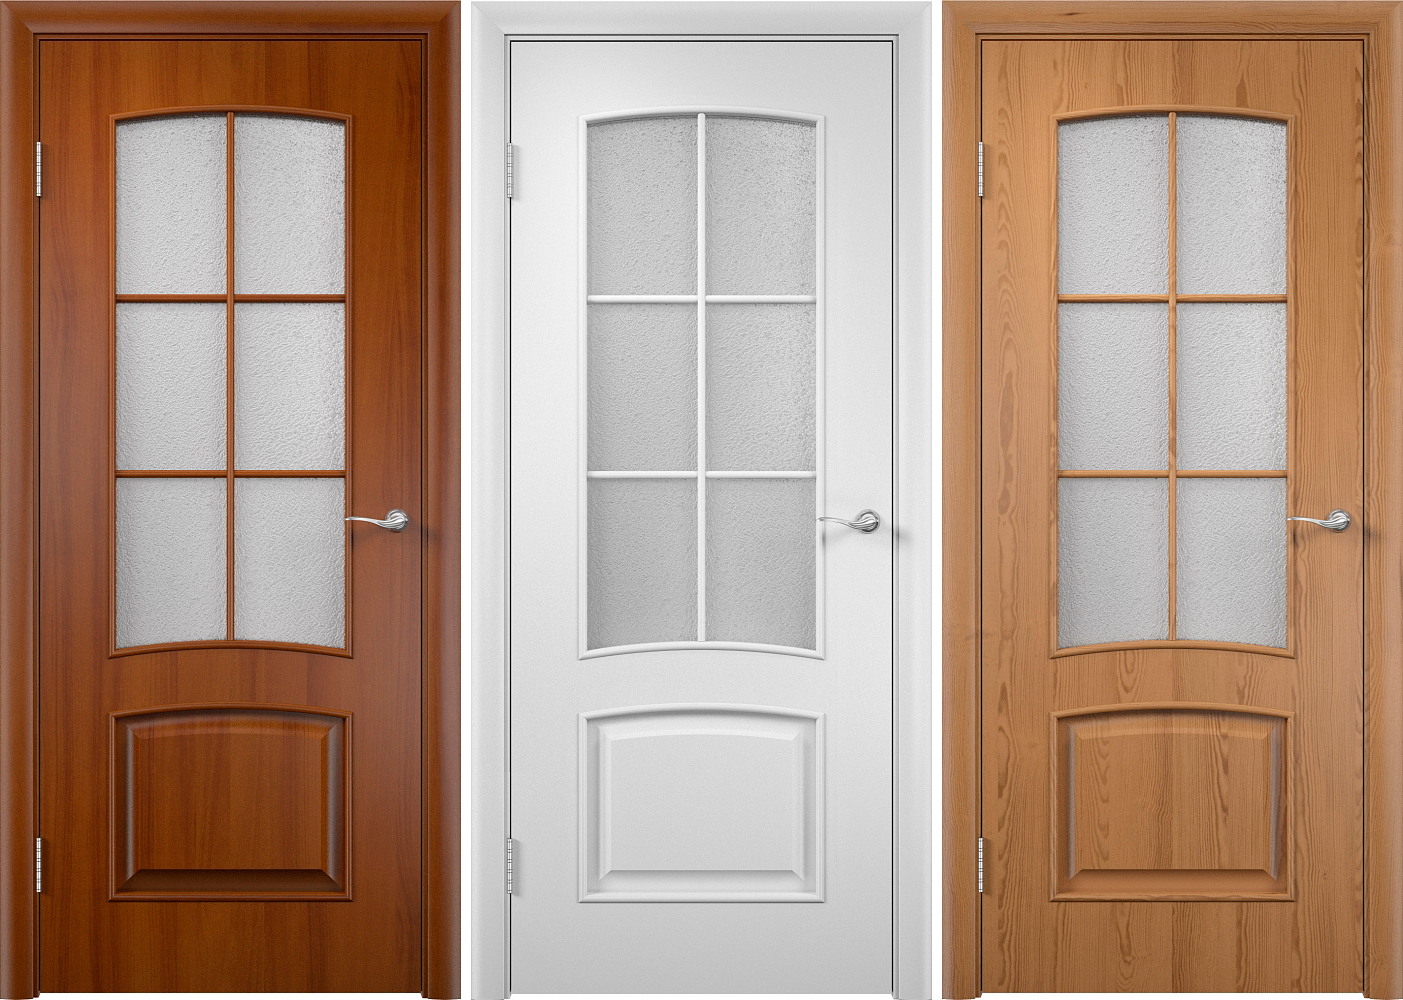 Methods Of Decorative Finishing Of Interior Doors